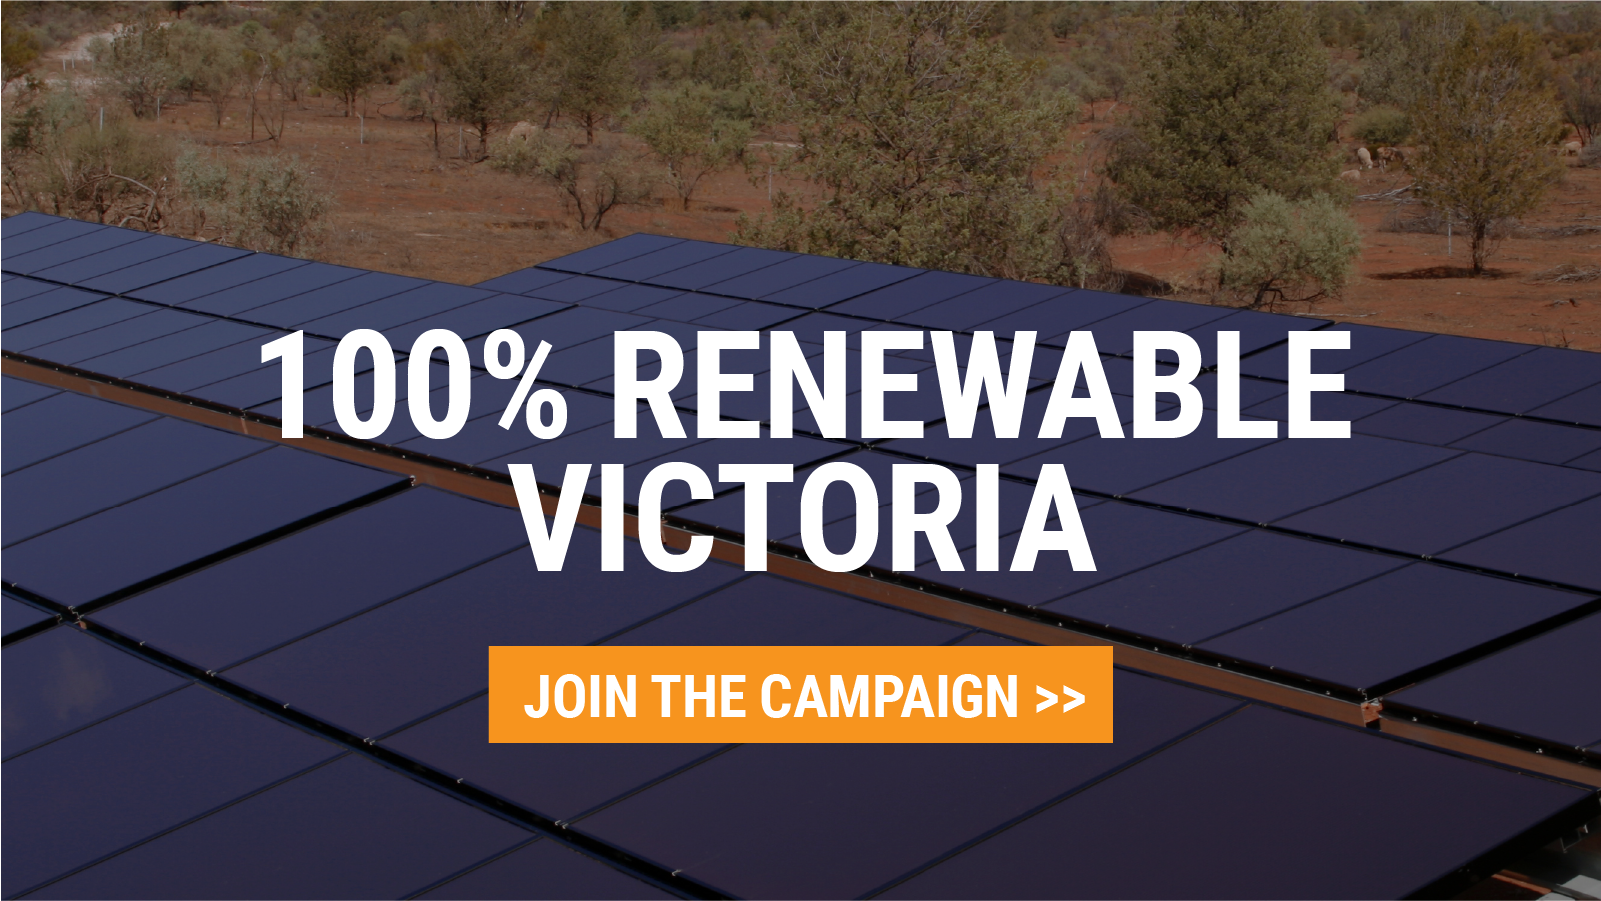 100% Renewable Victoria